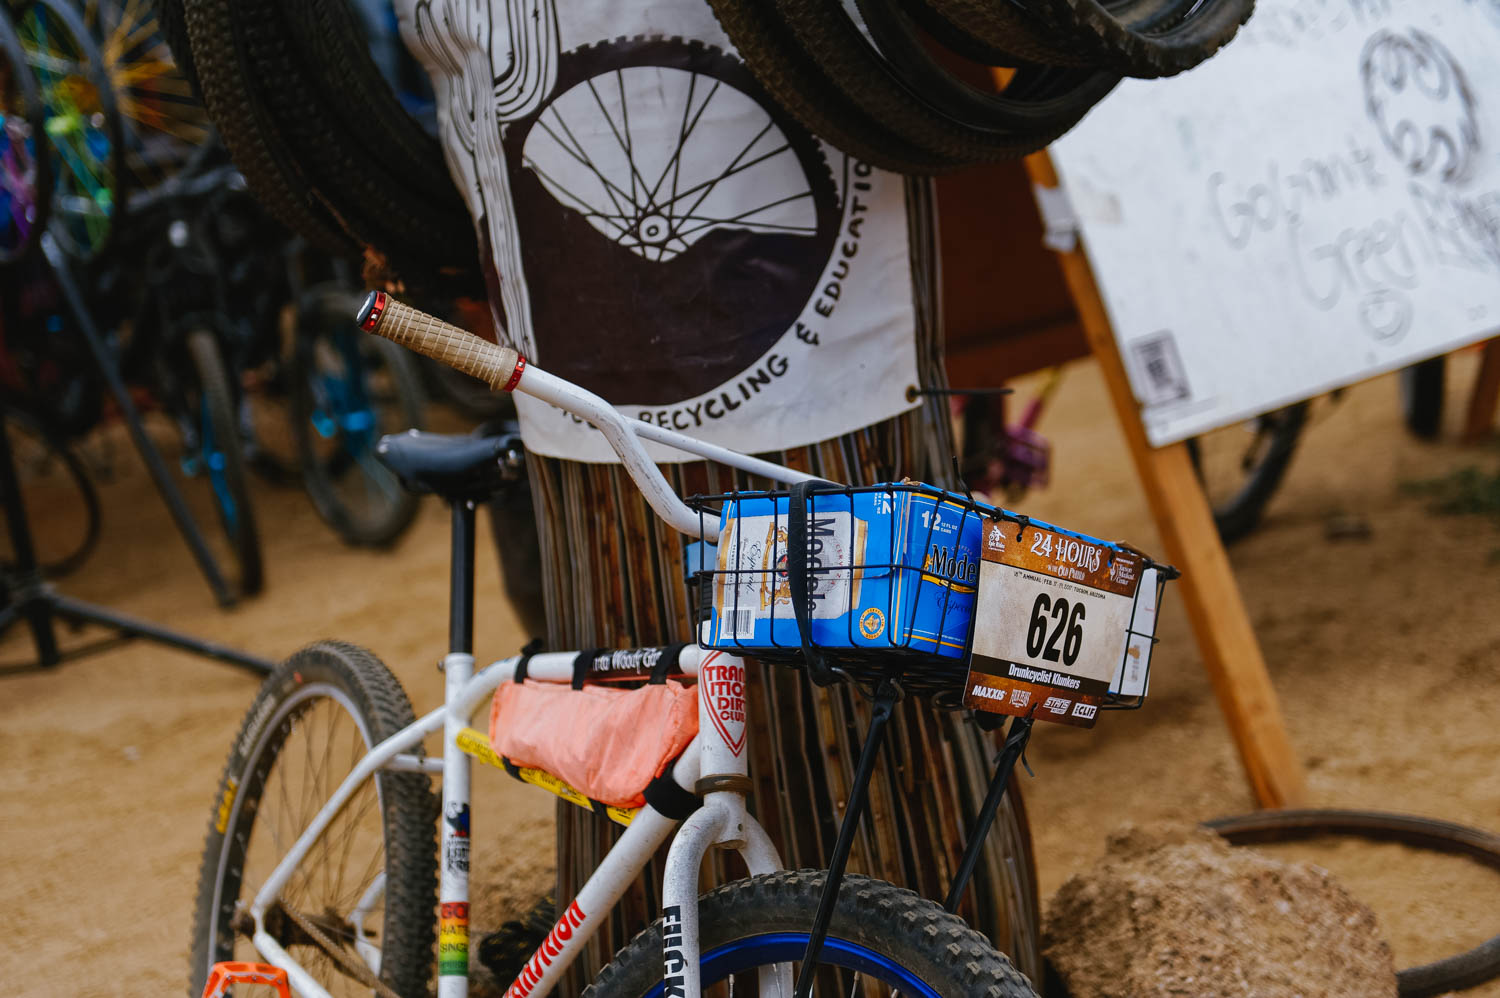 Single-speed rigid bike with a 12 pack of beer. To each their race.